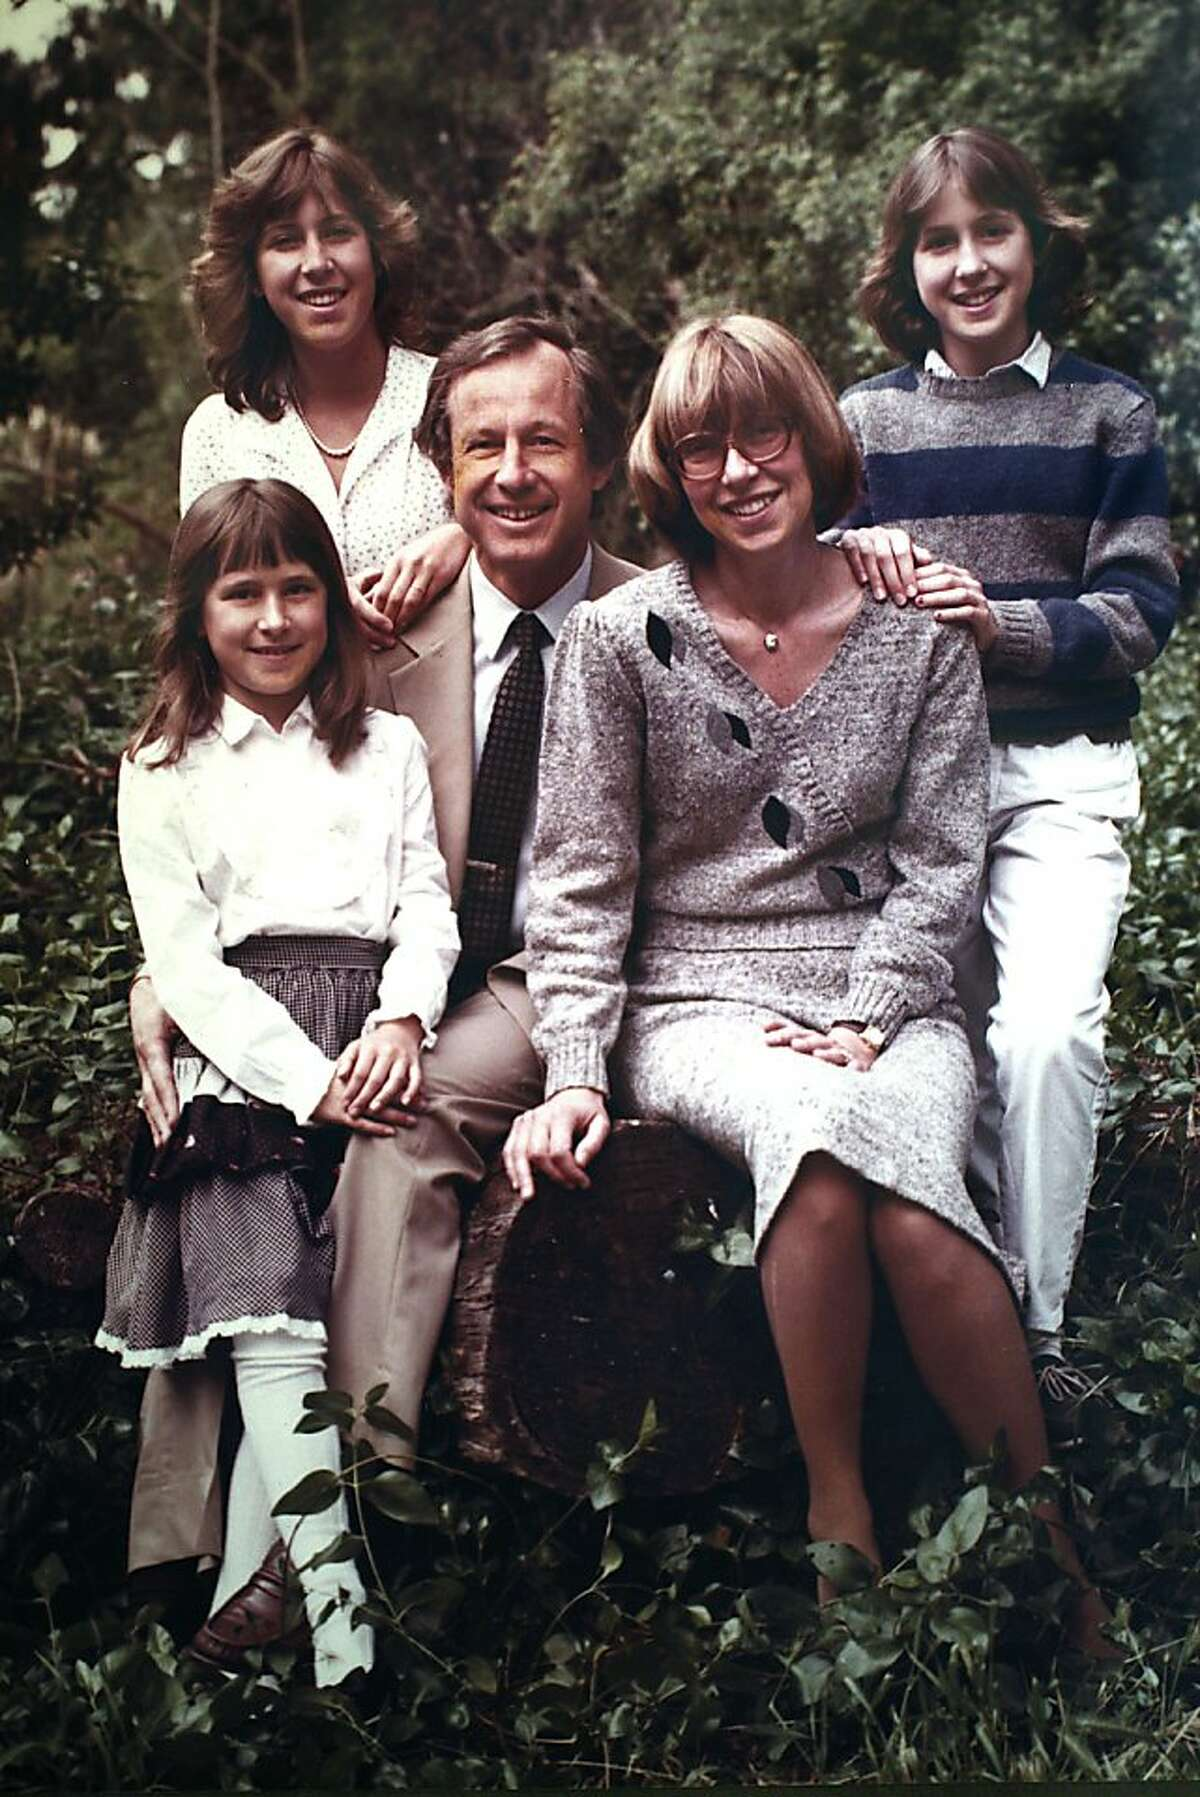 Clockwise from front--Anne Wojcicki (left front), Susan Wojcicki (left back), Stanley Wojcicki (middle), Esther Wojcicki (middle), and Janet Wojcicki (back right) in a portrait taken on the Stanford campus in Palo Alto, California, around 1982.